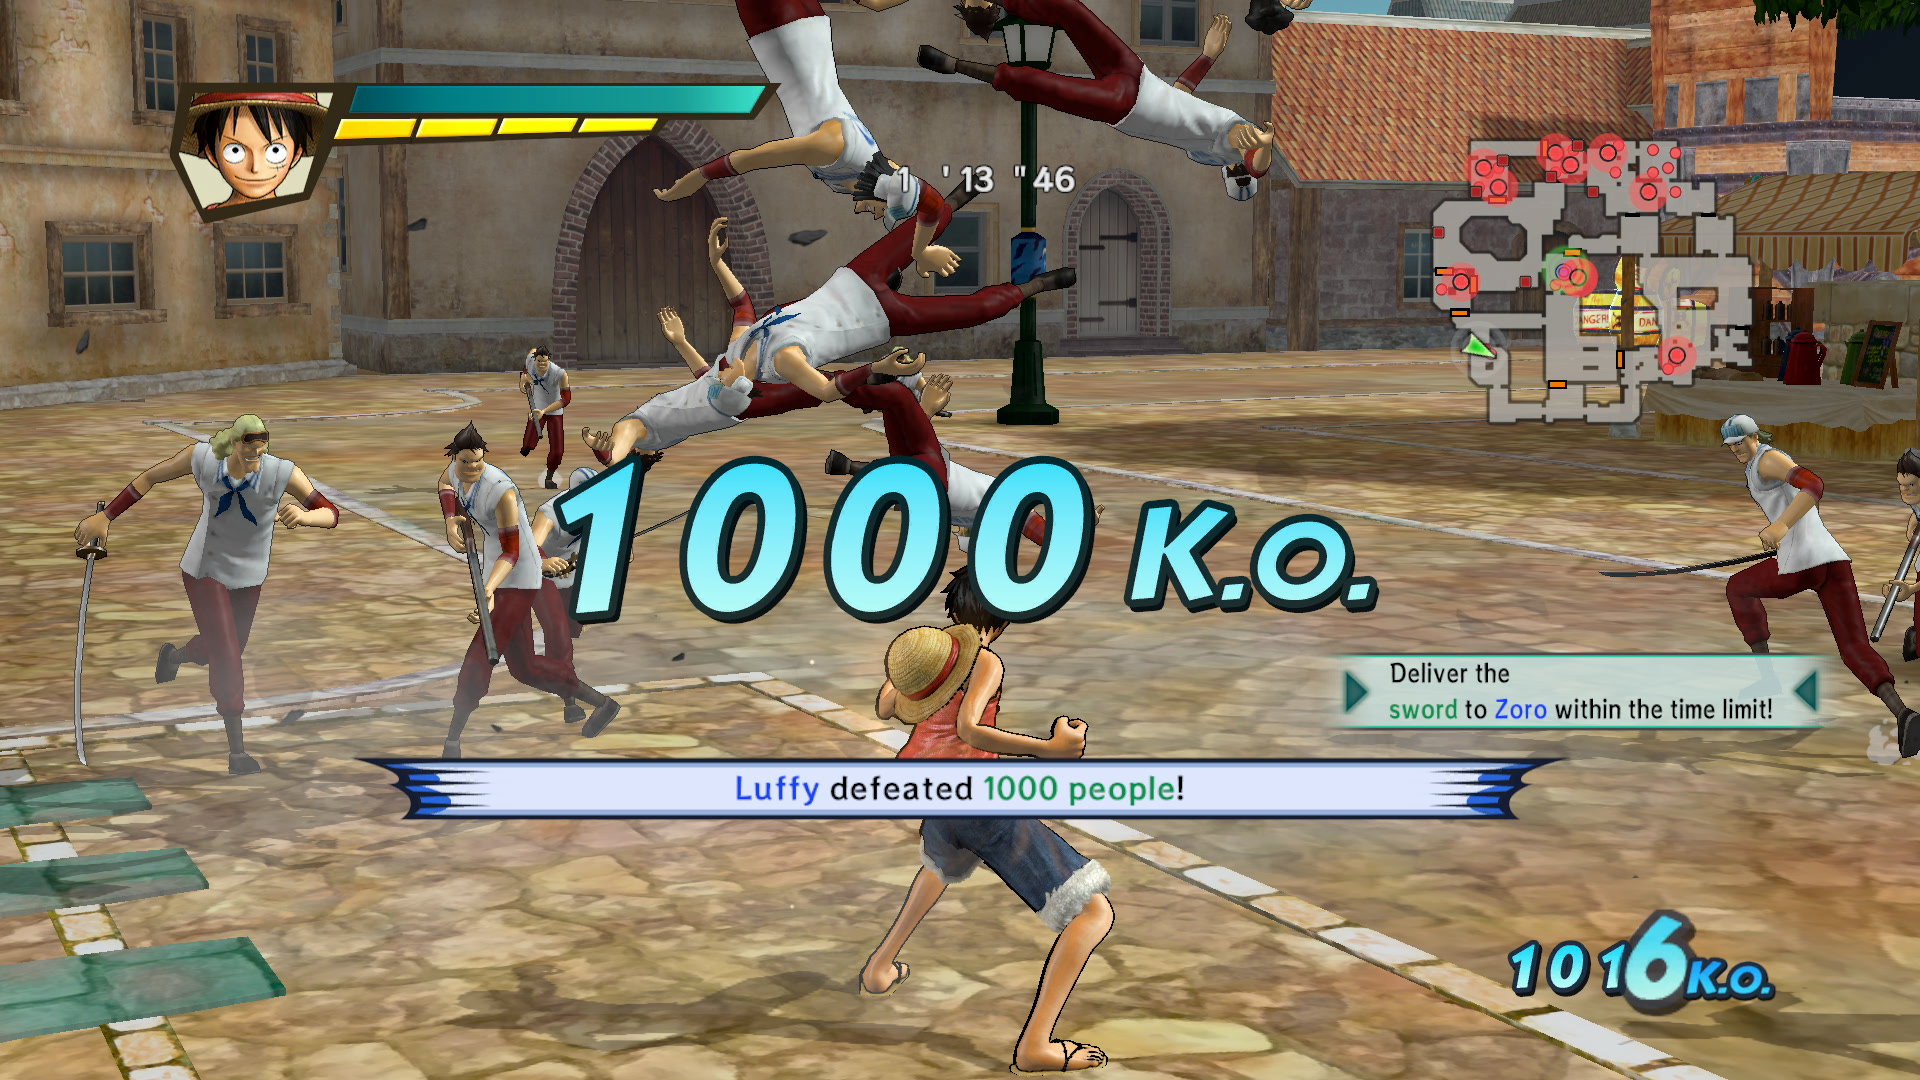 One Piece Pirate Warriors 3 - 1000 KOs